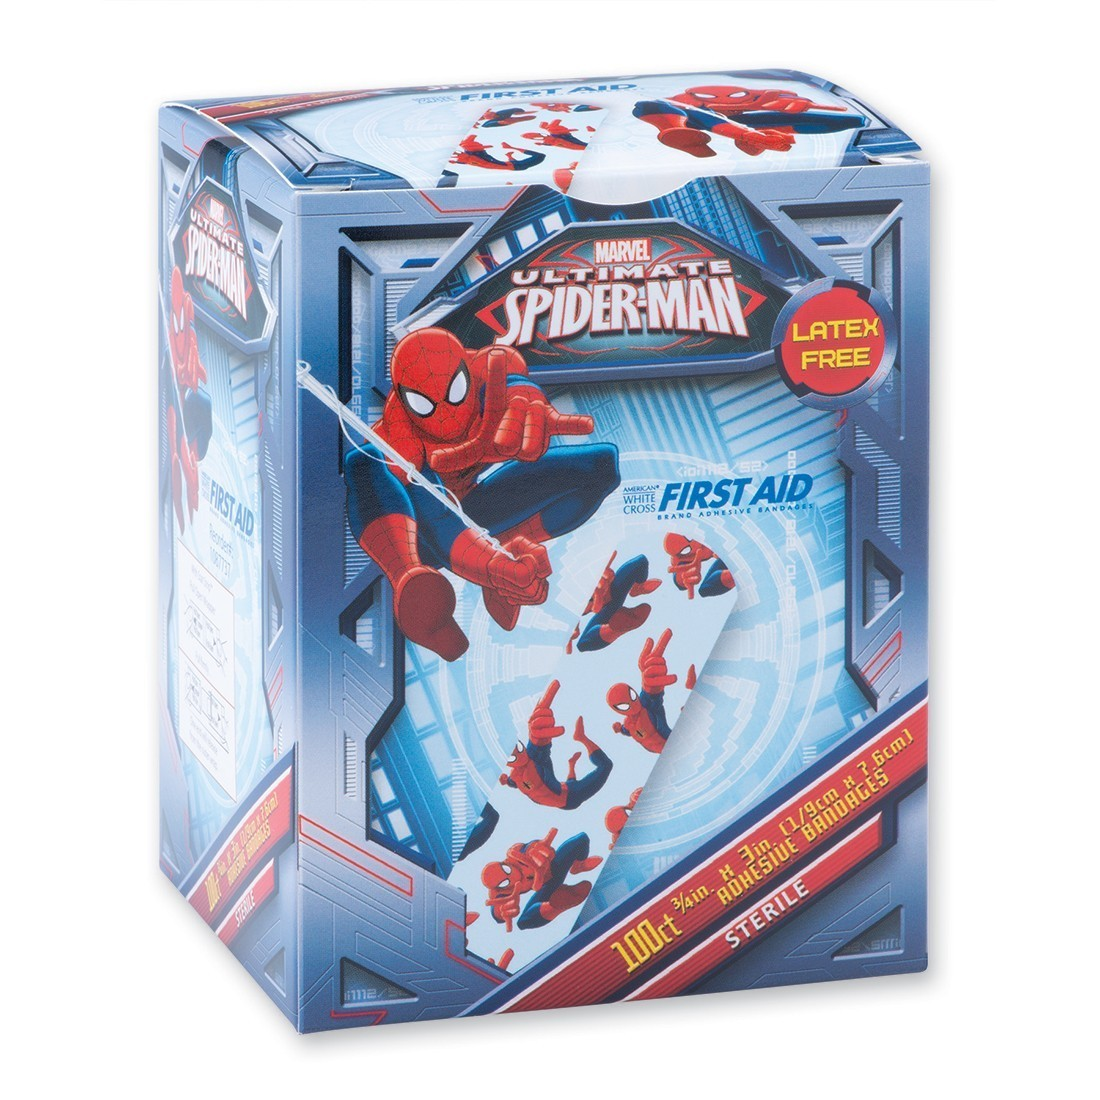 First Aid Ultimate Spider-Man Bandages [image]